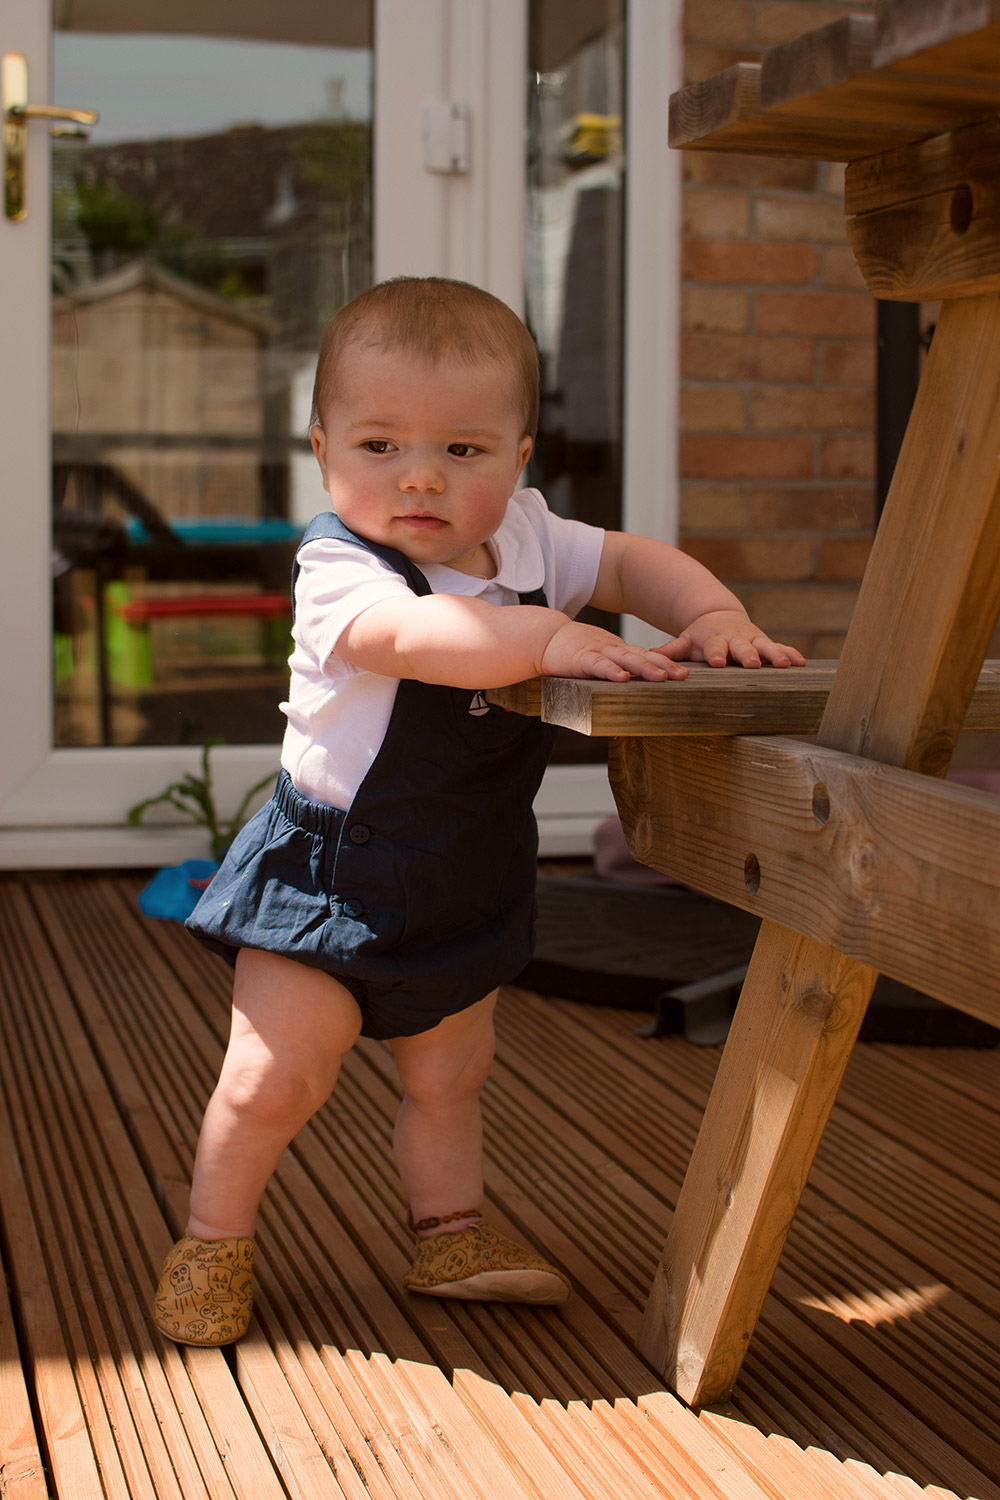 Baby Jesse Blue at 10 months old - Baby boy wearing cute sailor short vest and romper summer outfit and pirate leather shows standing at the table in the garden